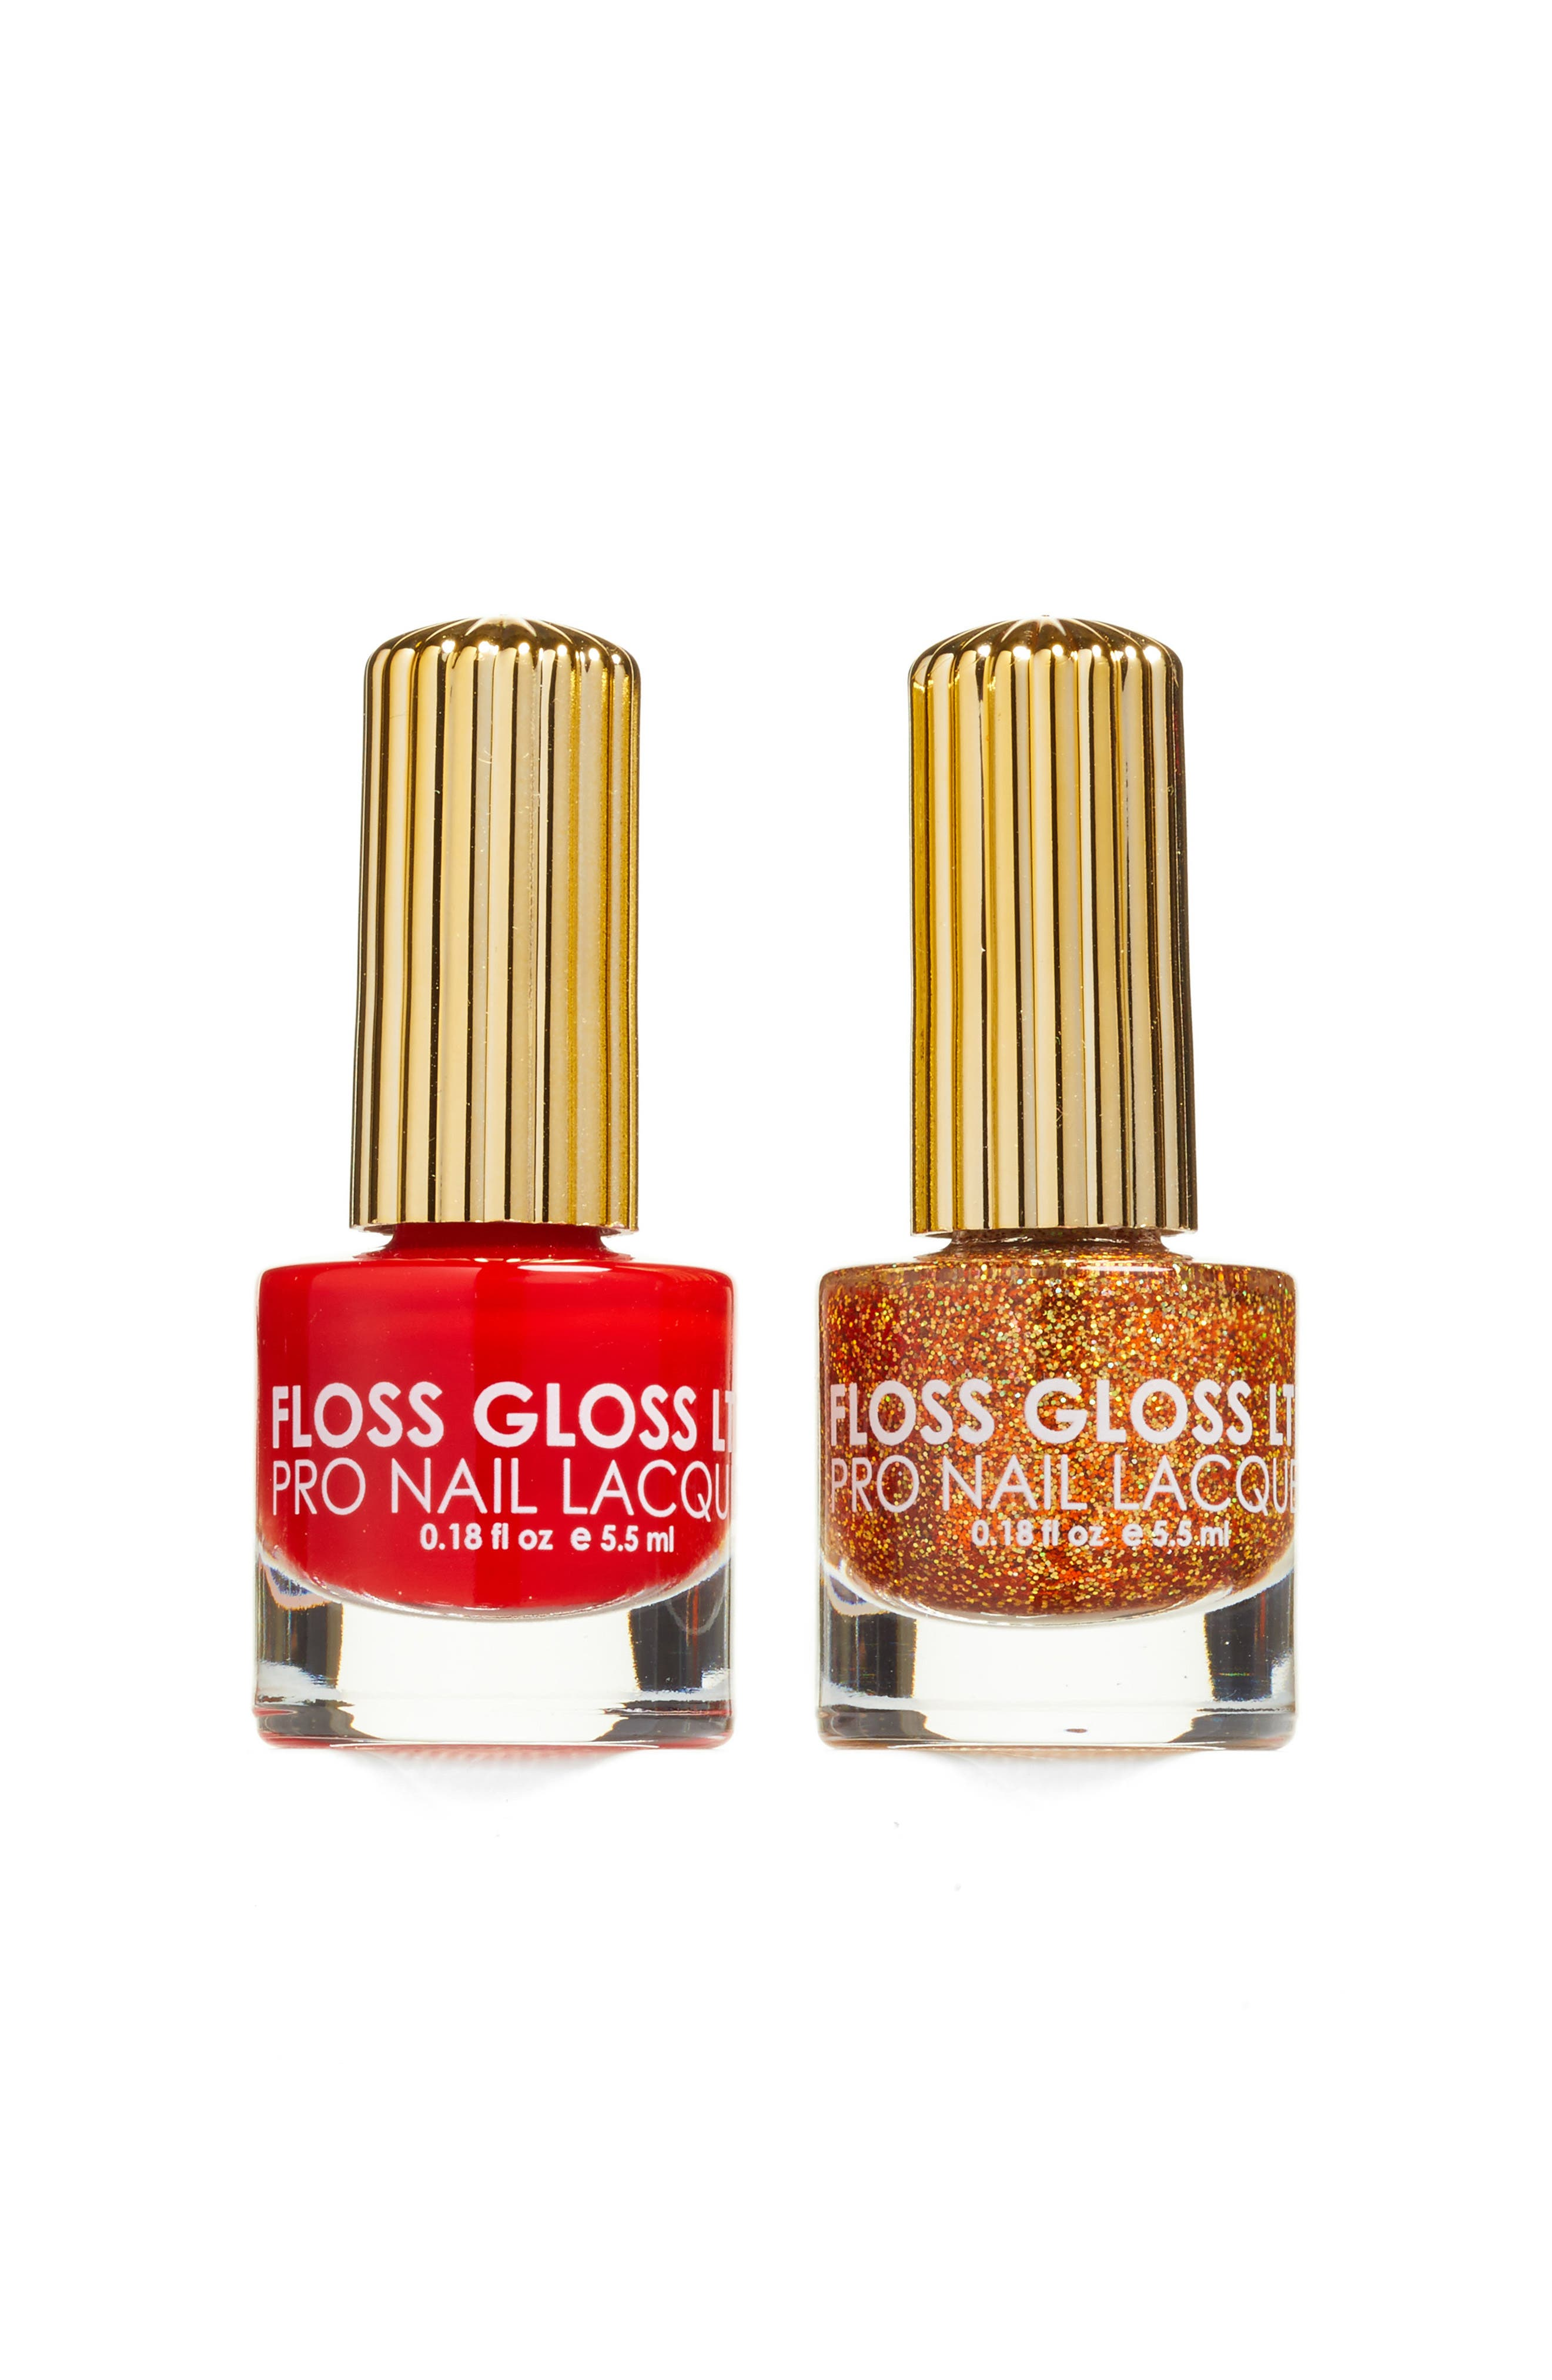 Floss Gloss Honey & Gangsta Boo Set of 2 Nail Lacquers